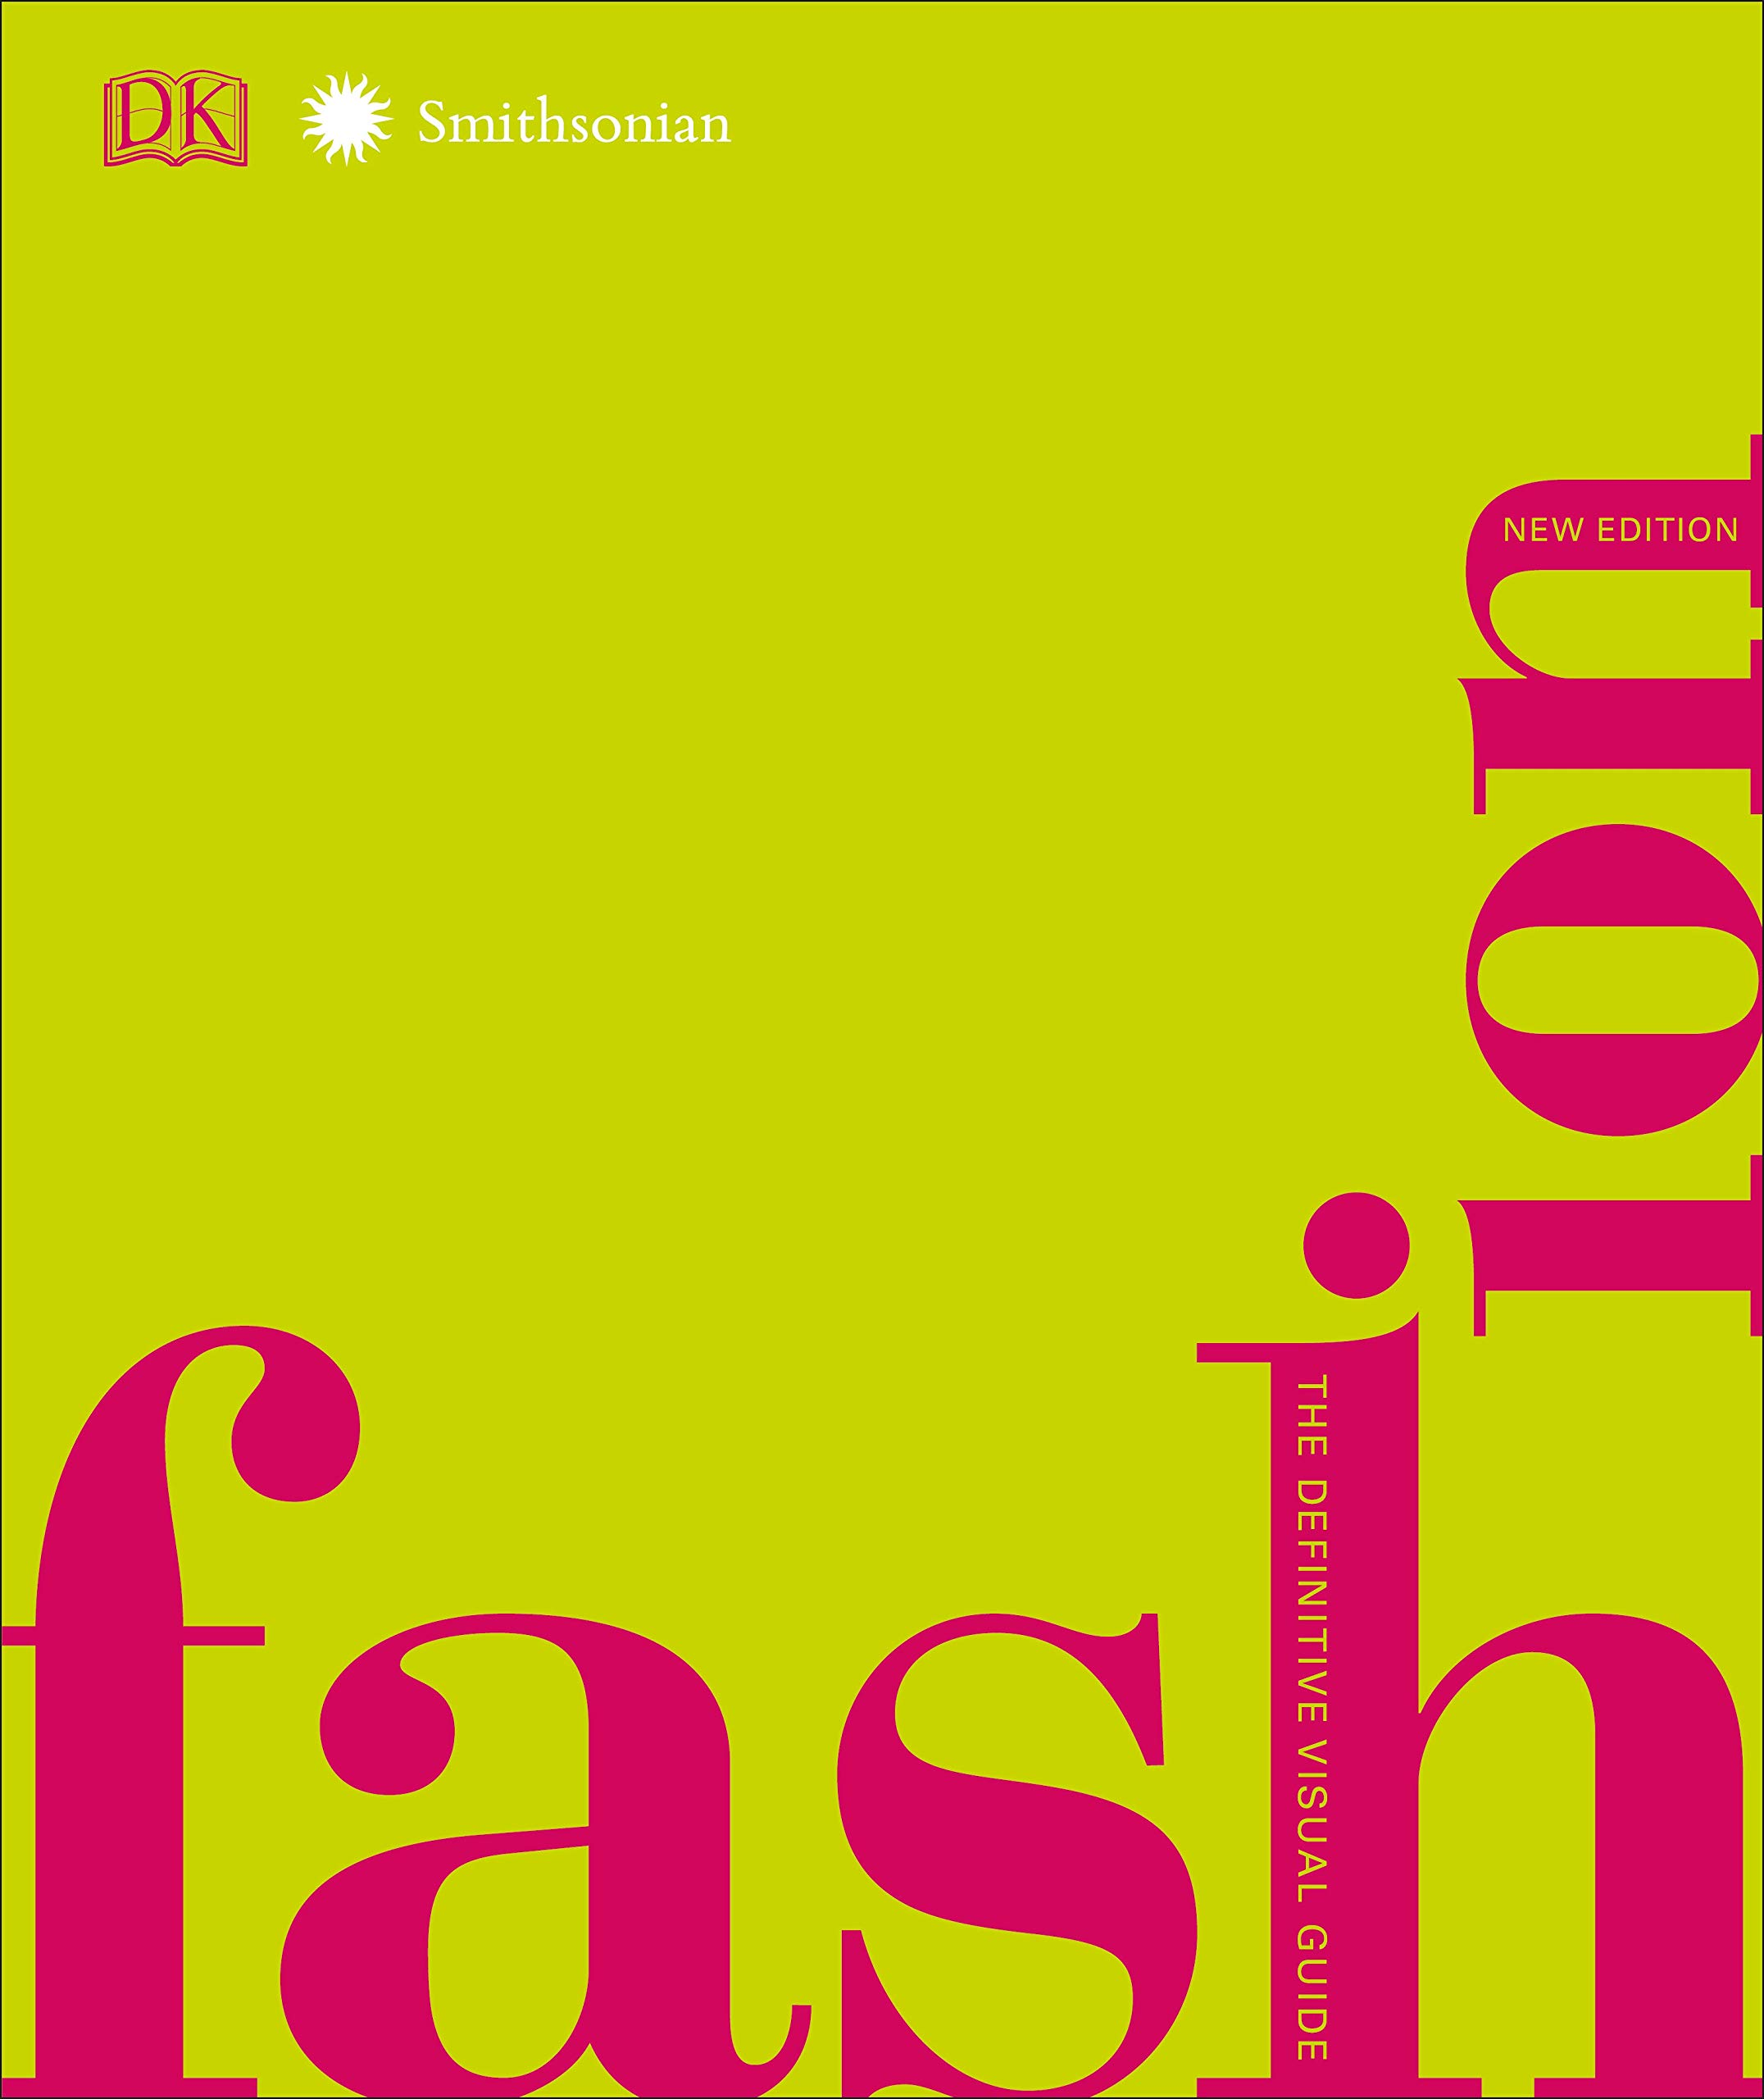 71lFdNm2lLL - Fashion, New Edition: The Definitive Visual Guide (Smithsonian)